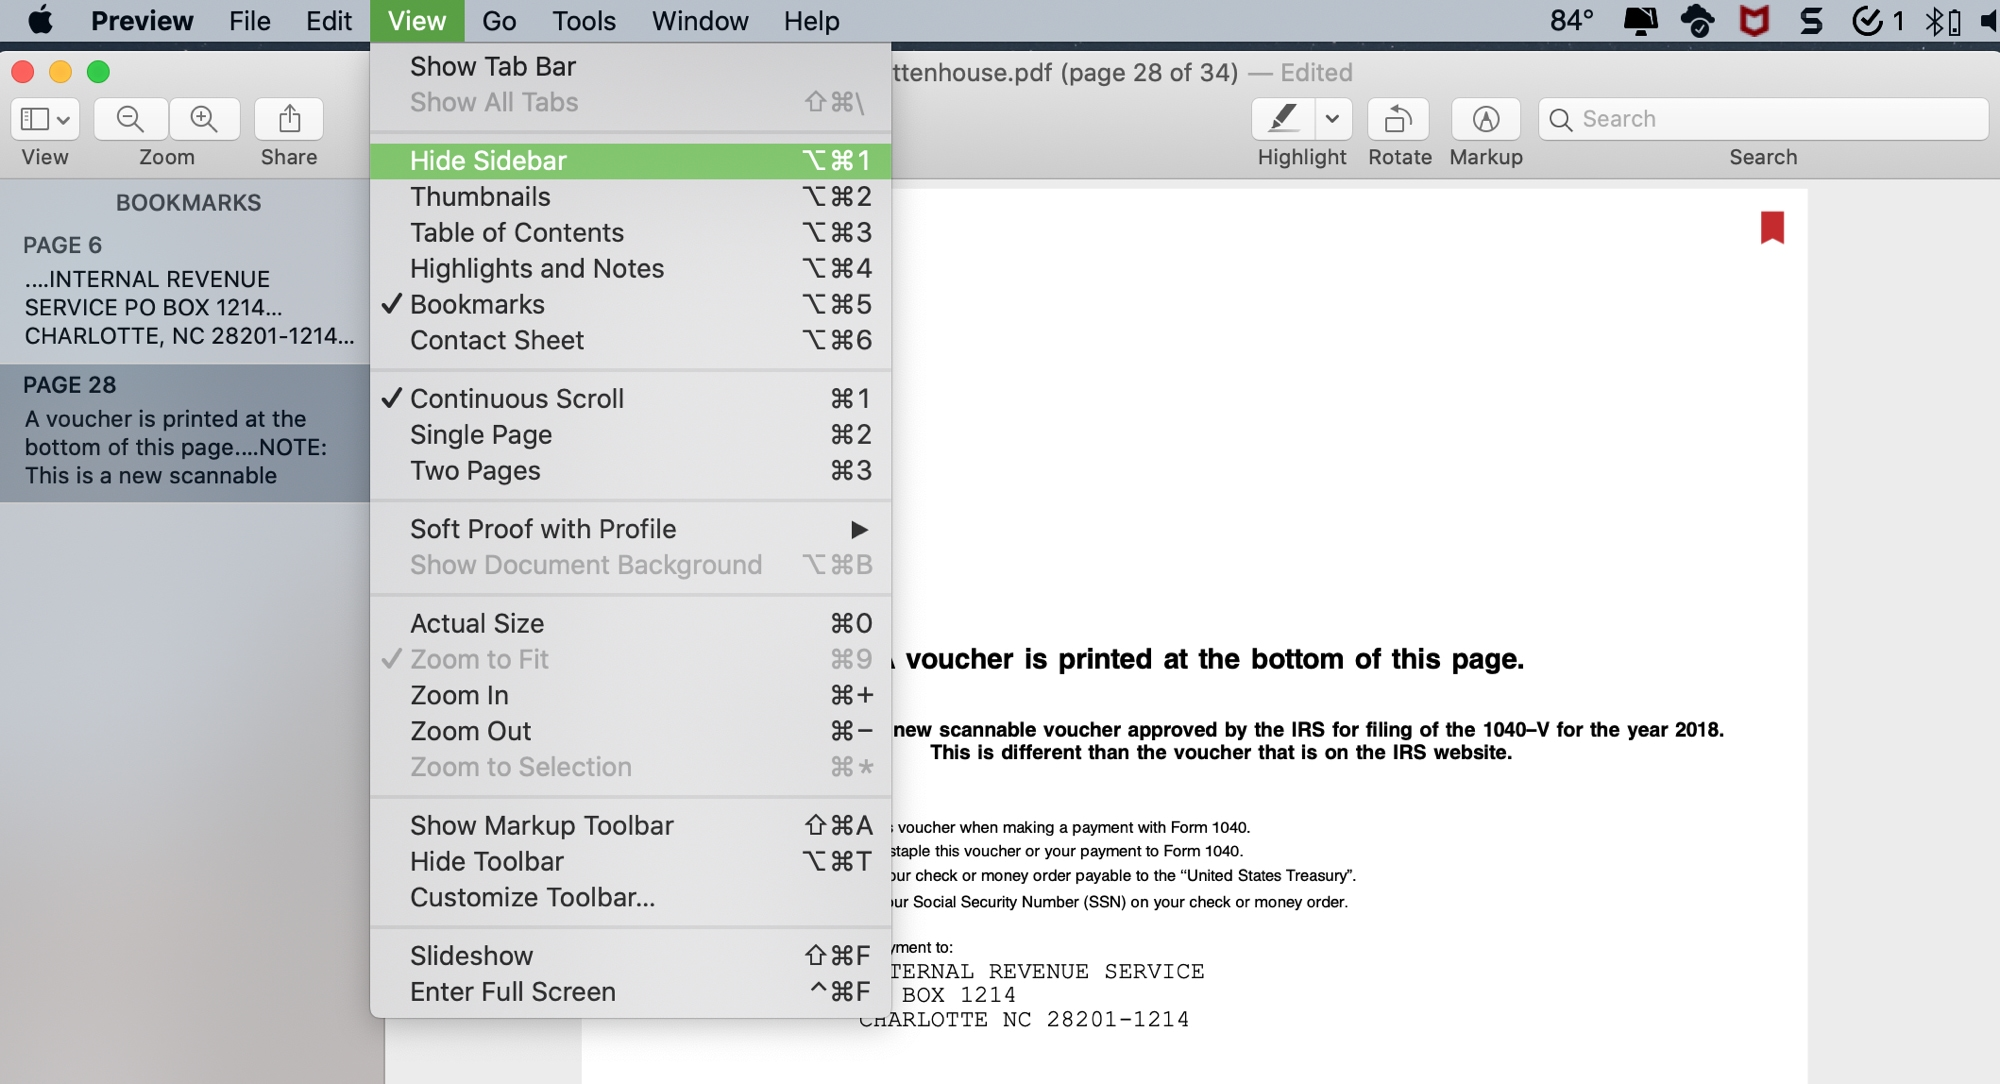 Preview Hide Sidebar for Bookmarks